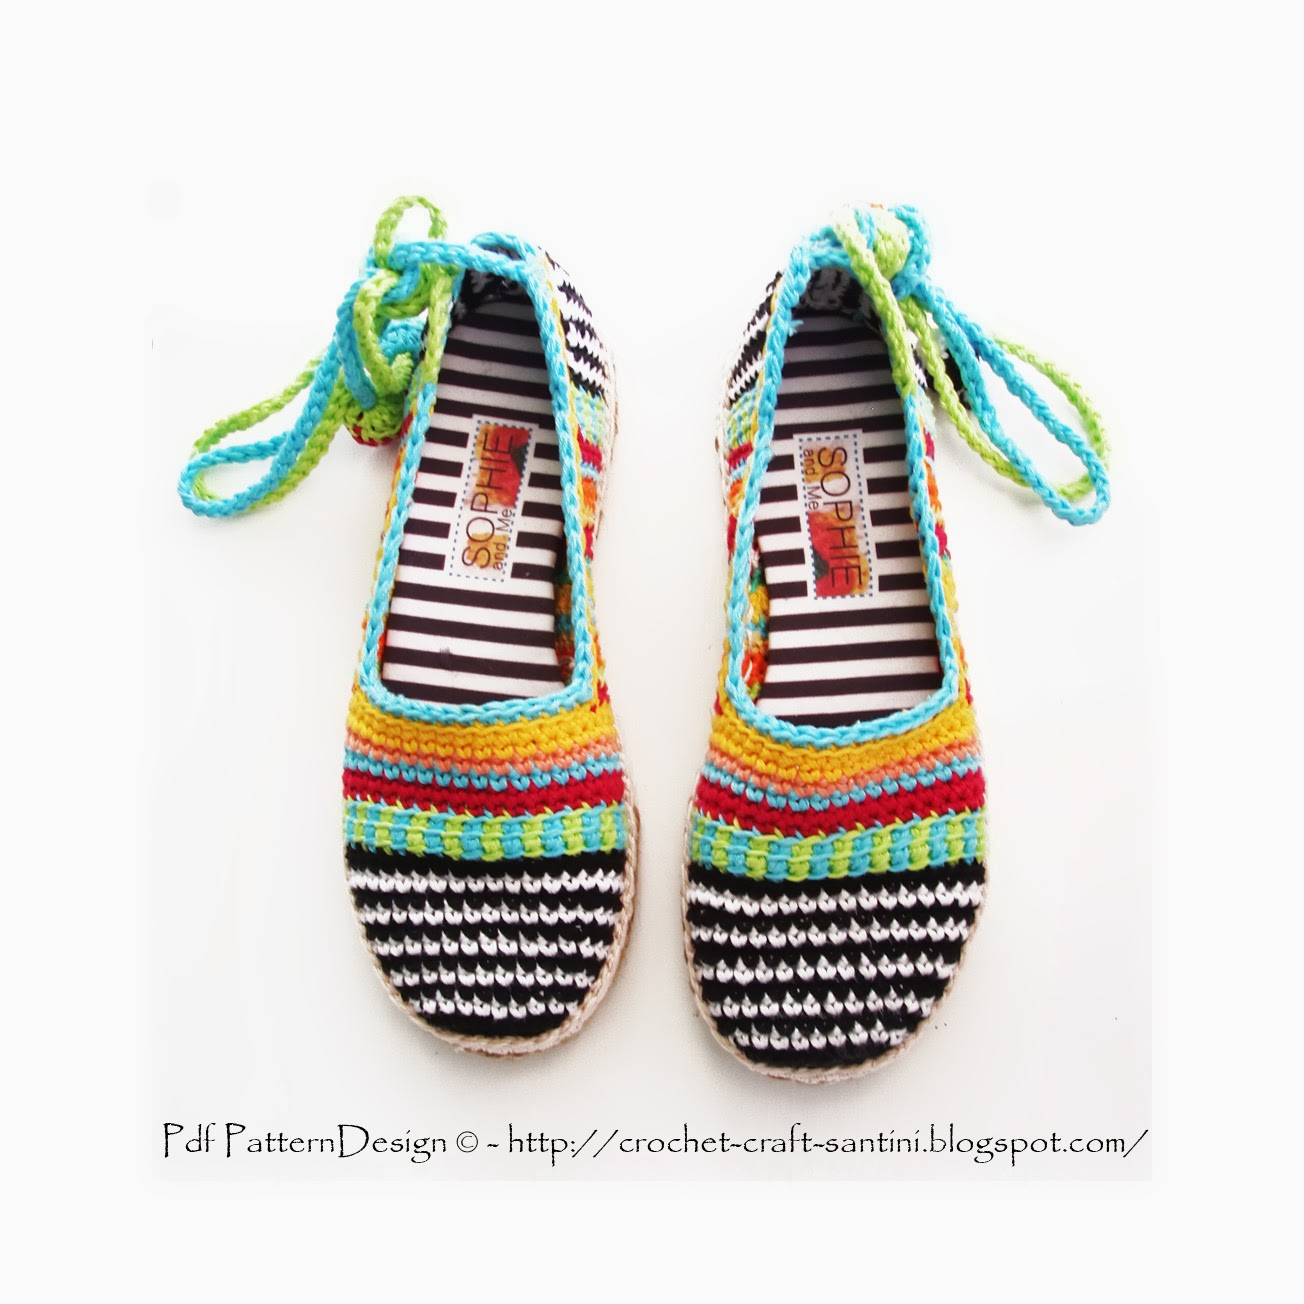 Crochet Shoes : Sophie and Me: HAPPY SCRAP CROCHET SHOES!